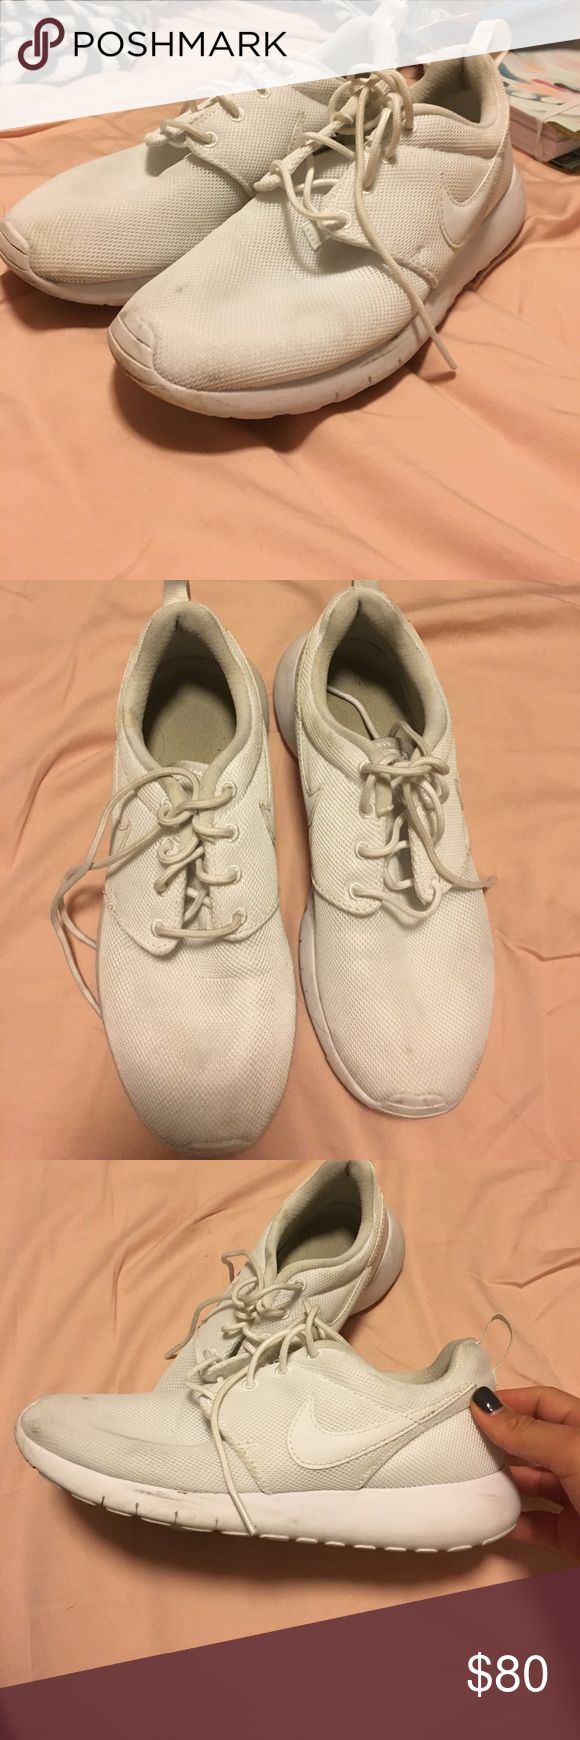 Nike Roshes all white nike roshes, too big for me. worn once for a costume! size 5Y so 6 in women's. Will clean before shipped! Nike Shoes Athletic Shoes